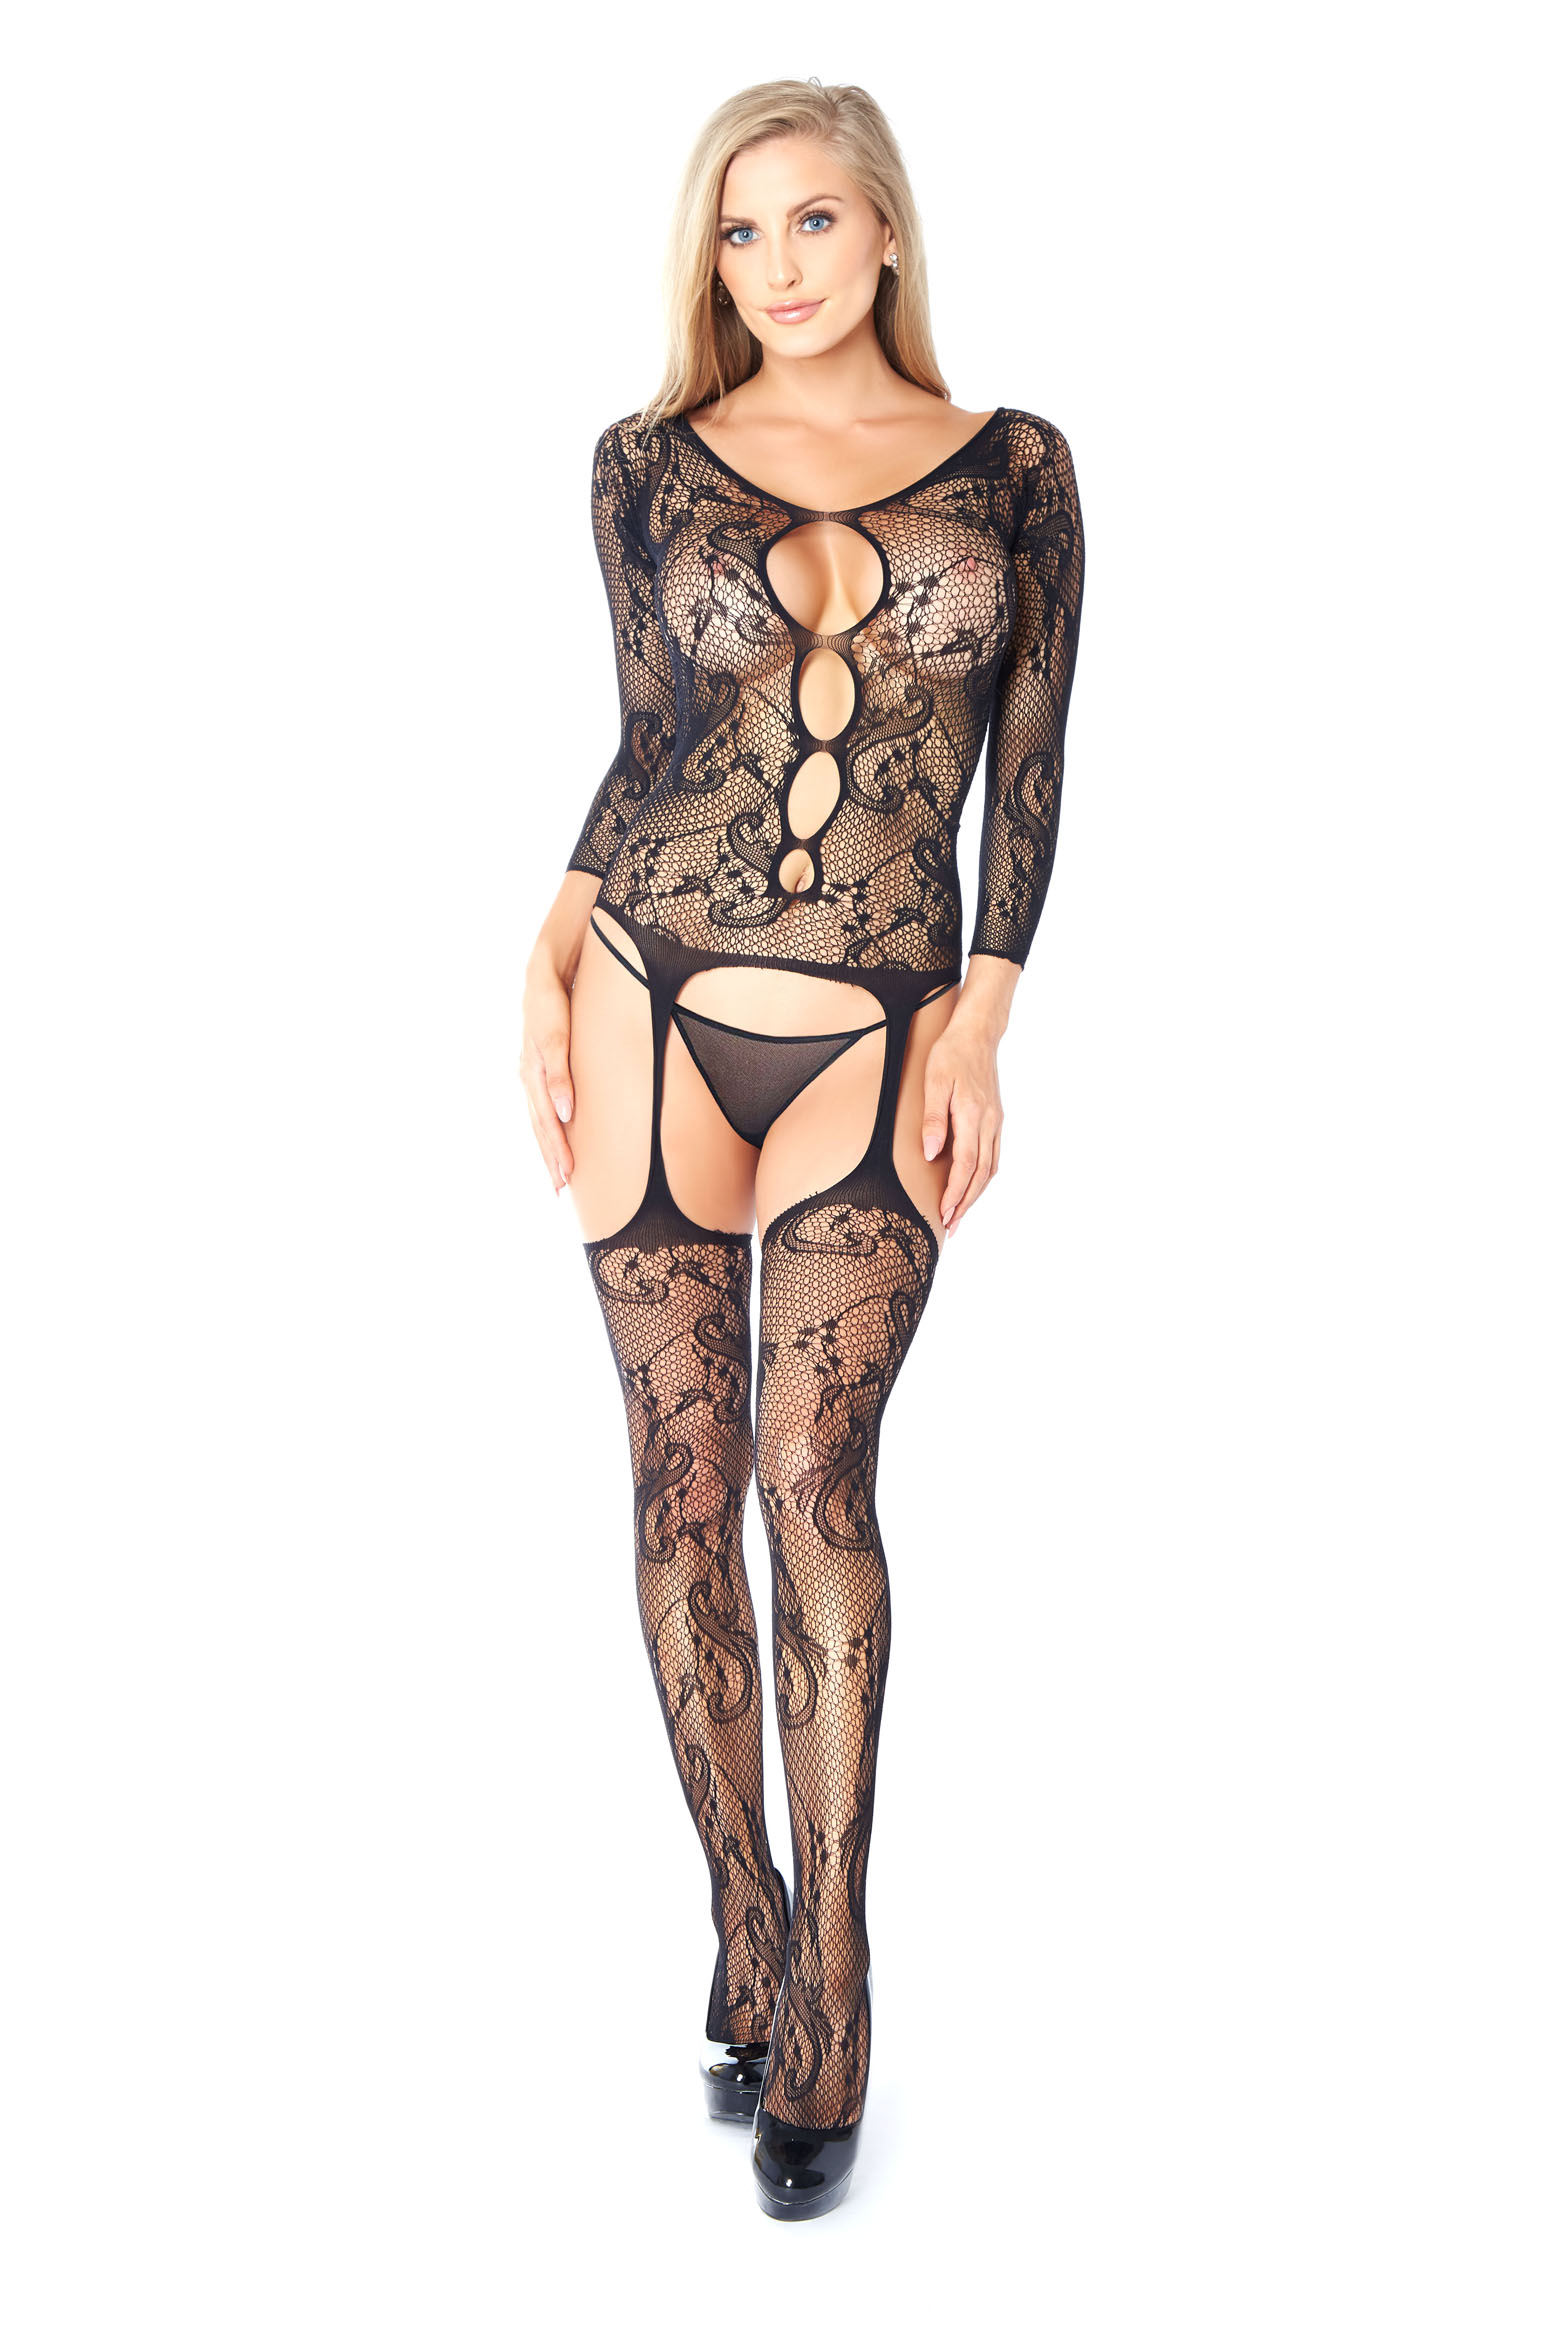 47520211e26 Glitter Leopard Pattern Open Crotch Bodystocking-37502 larger image